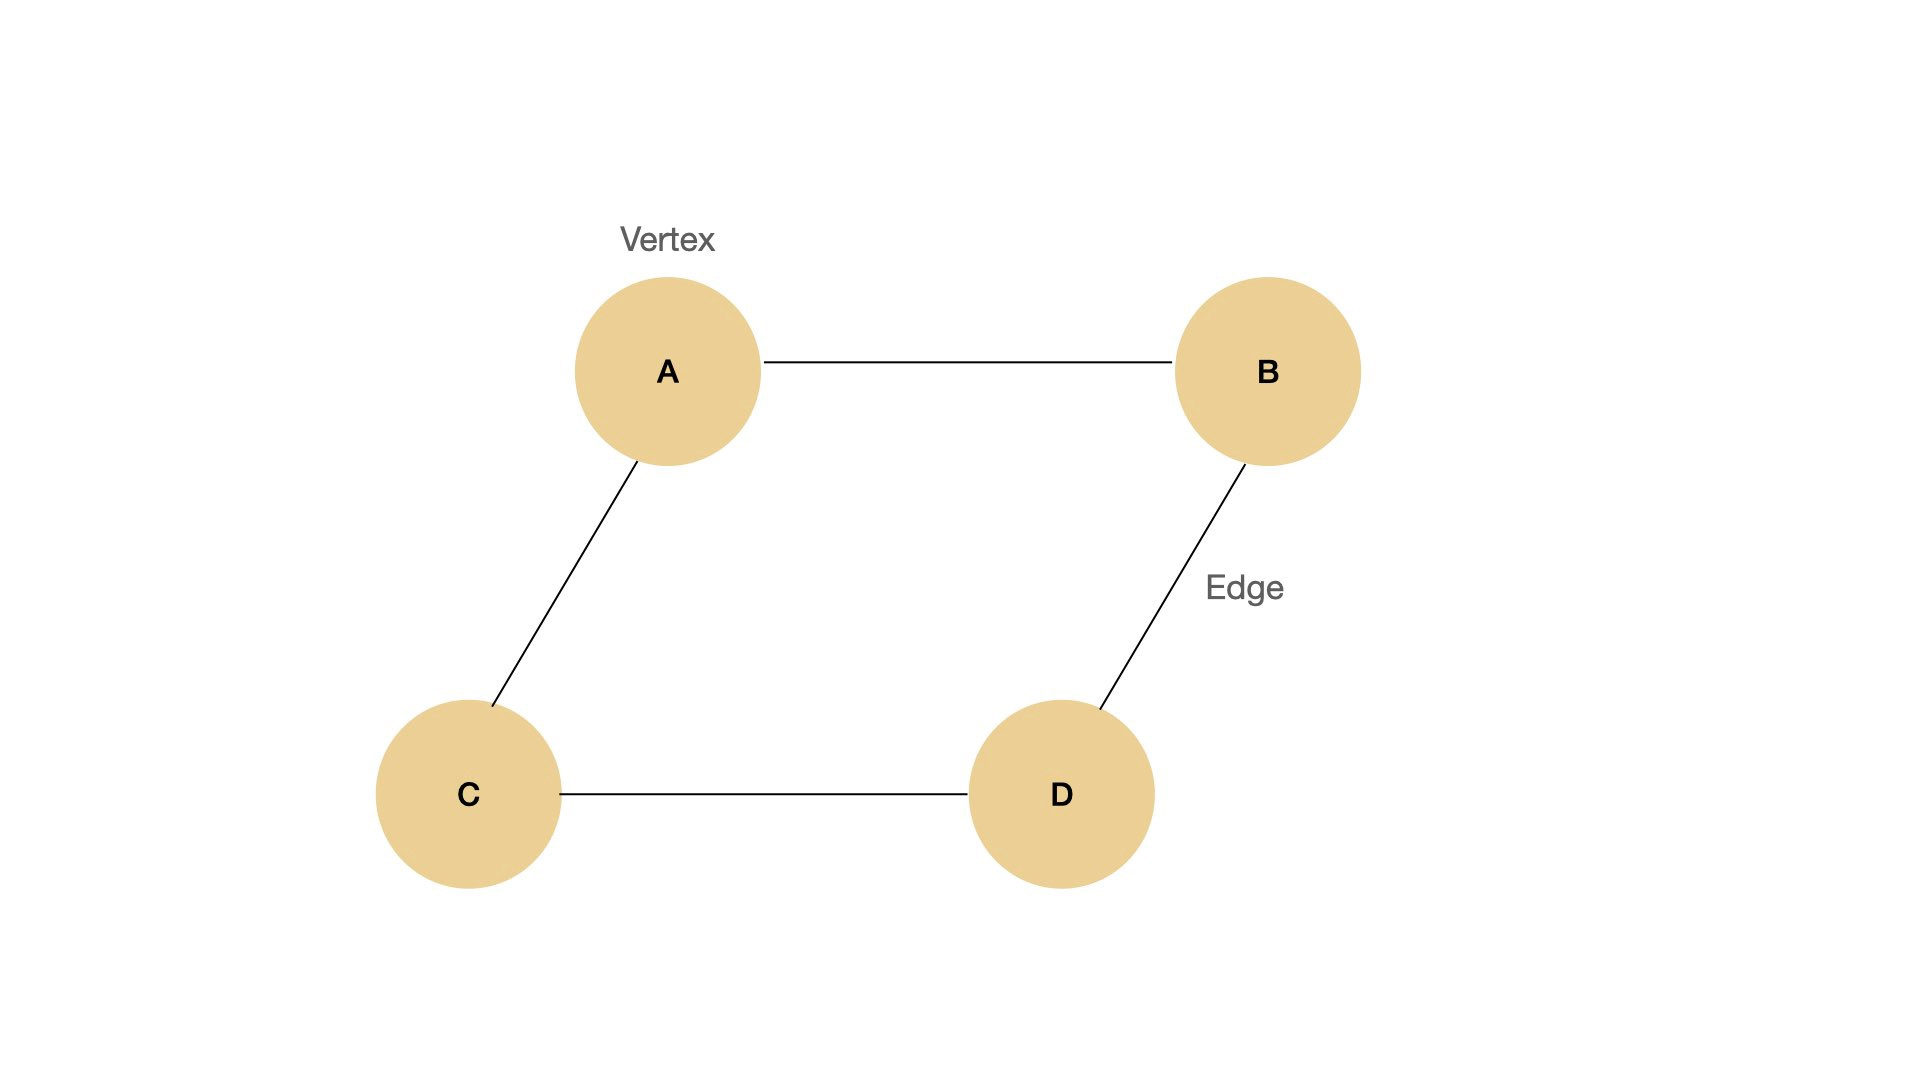 Graph with 4 vertices and 4 edges